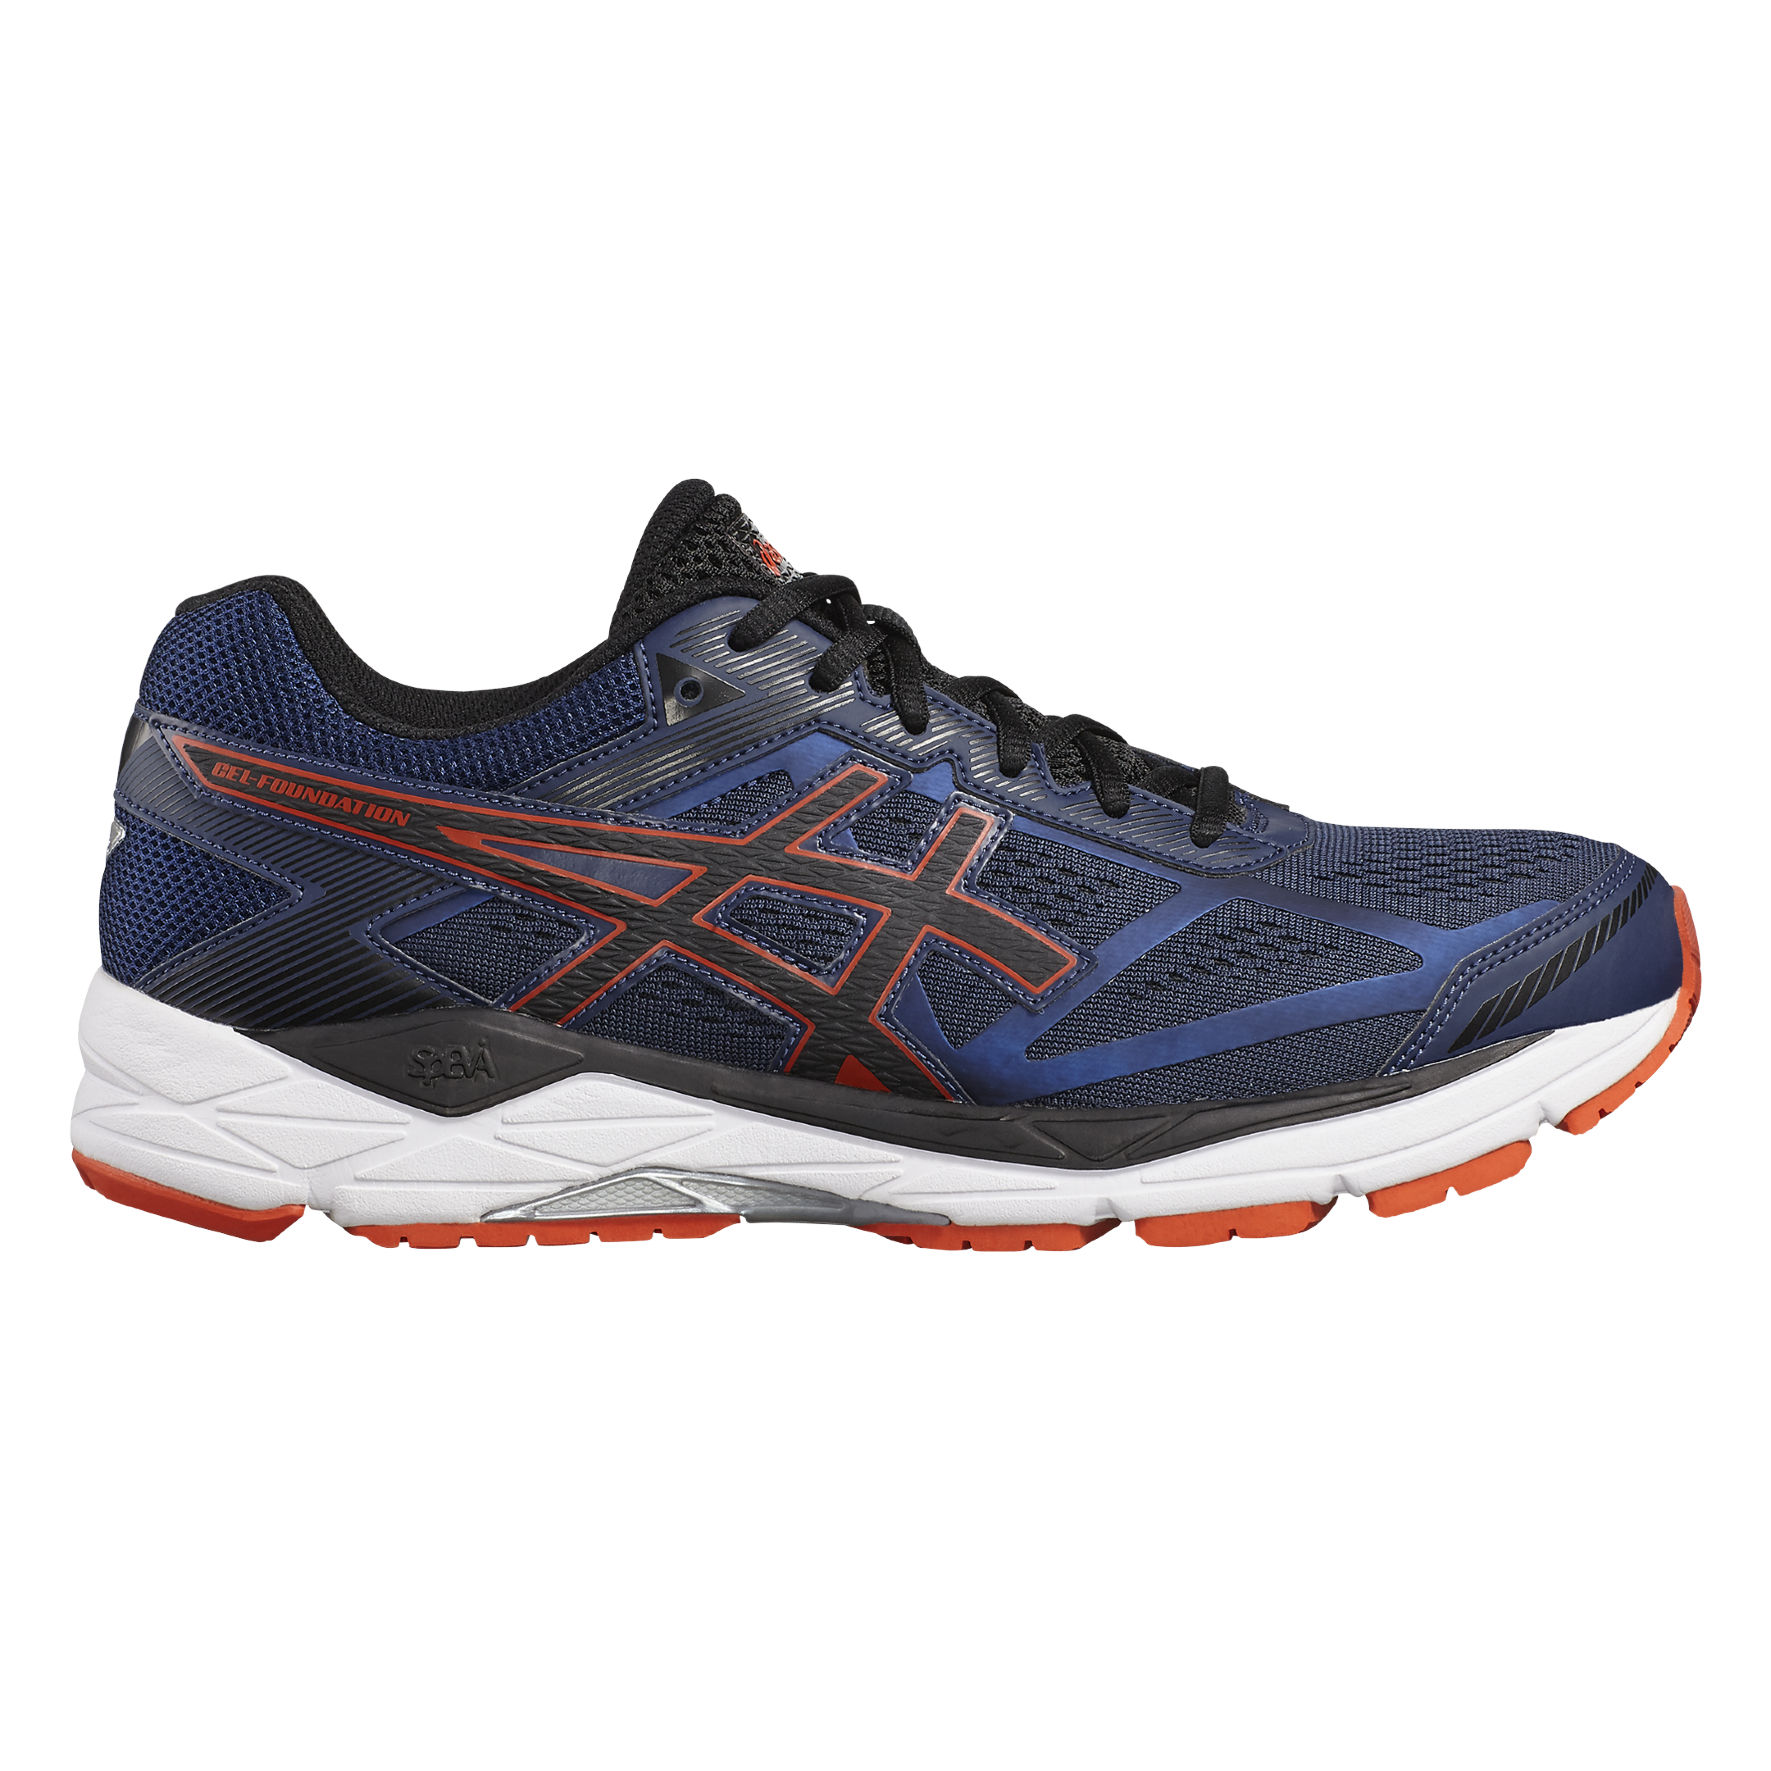 Asics Gel Foundation 12 2E in Dunkelblau